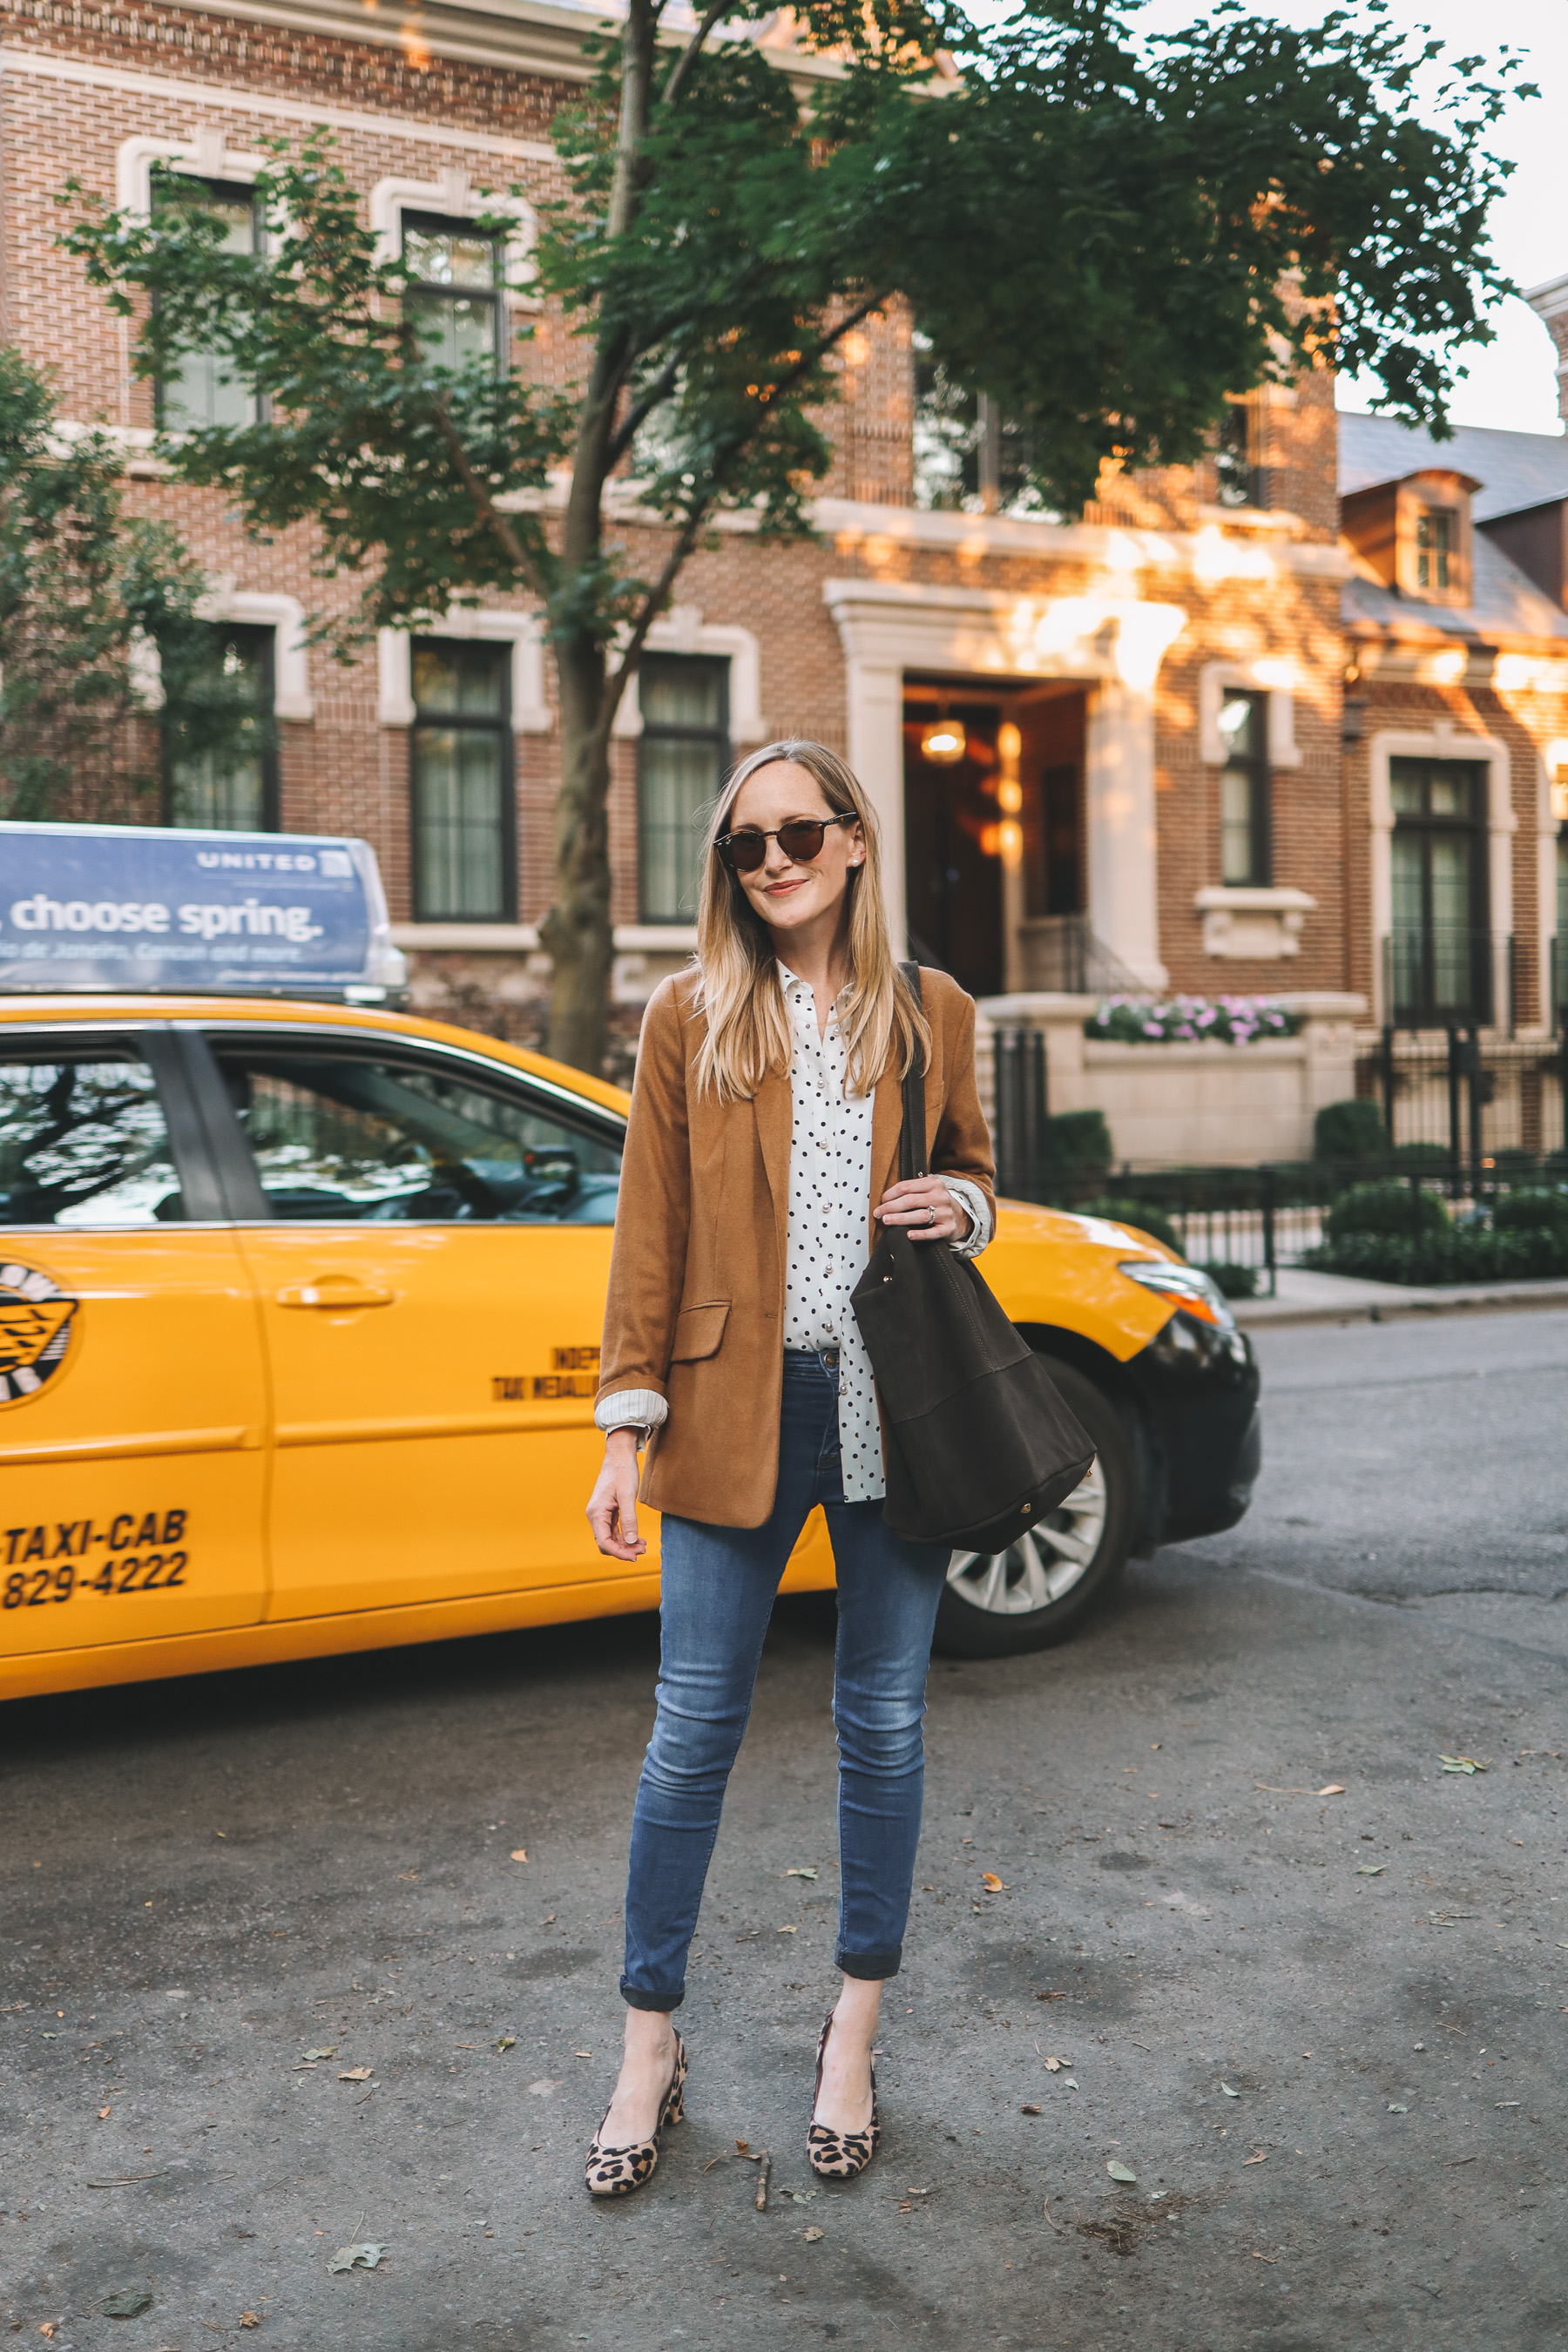 a girl in the street wewaring a Mark & Graham Amalfi Italin Suede Tote and a yellow cab in the back